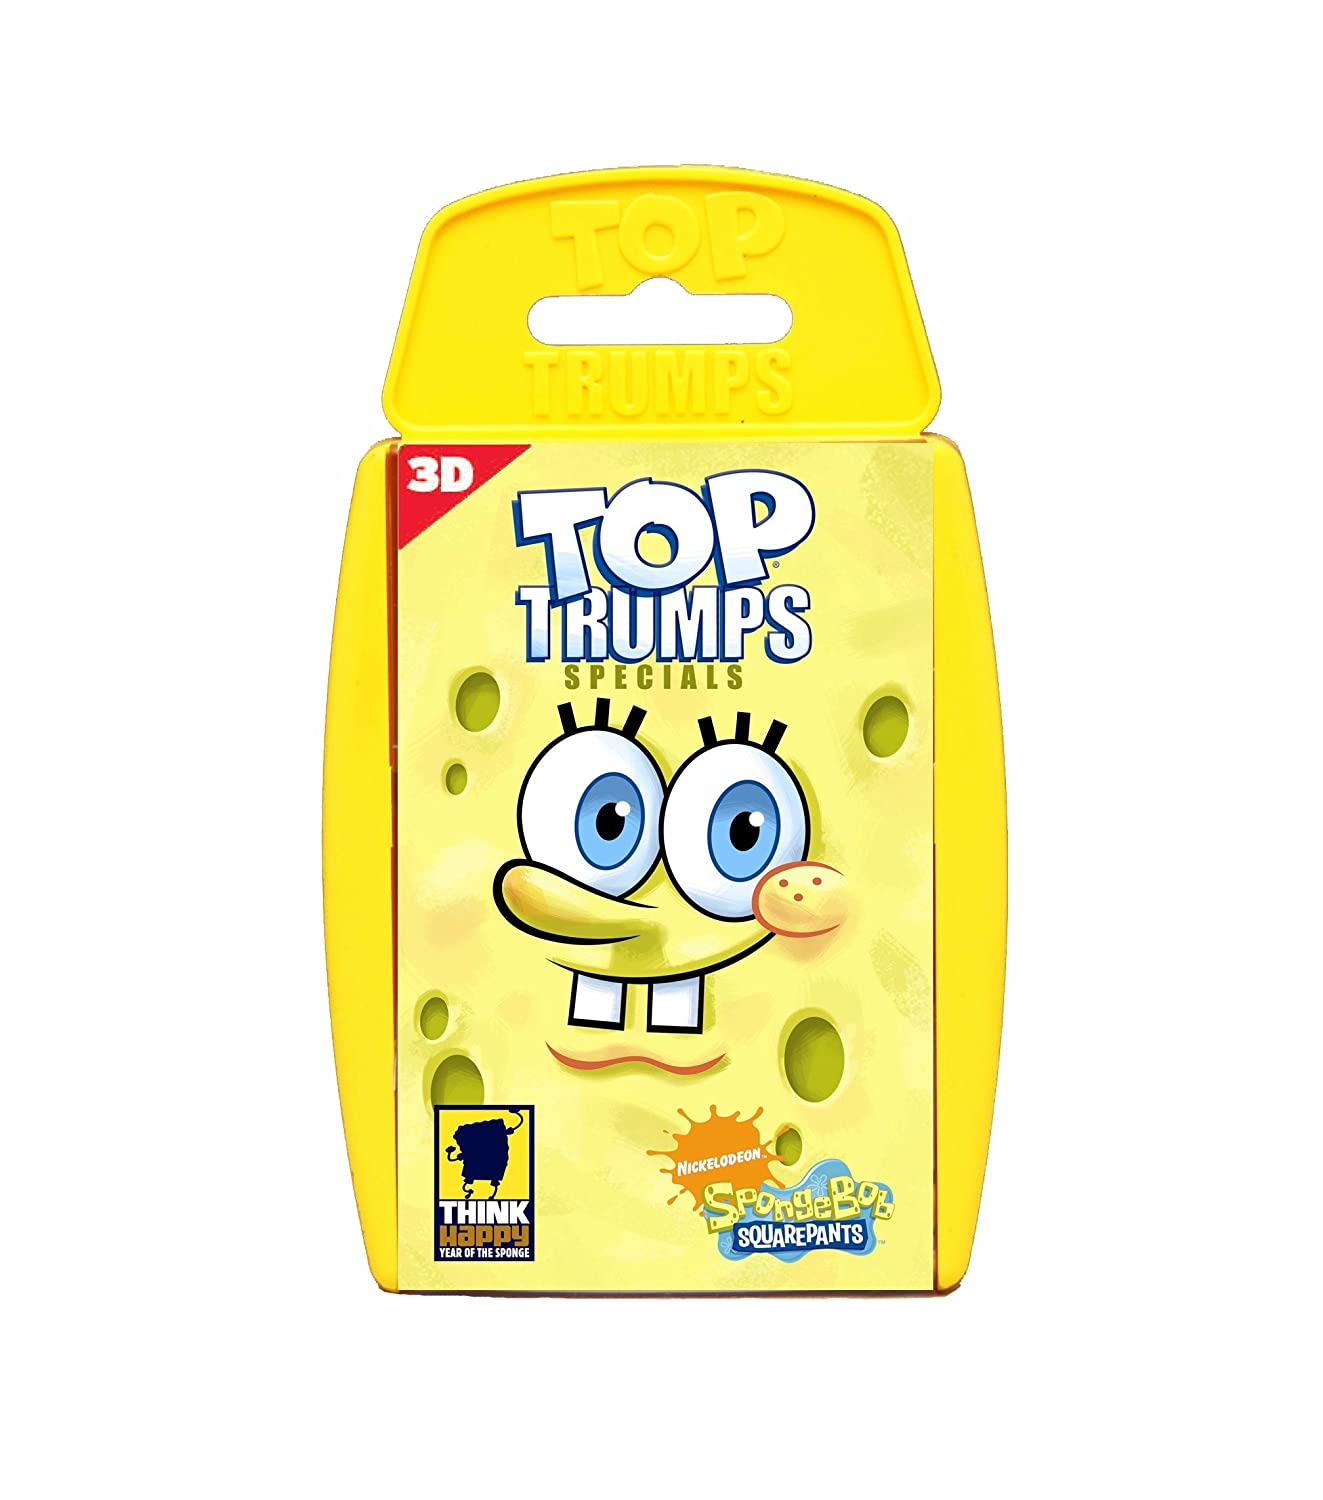 Winning Moves Top Trumps Specials 3D SpongeBob SquarePants 13208 Card Games Games_and_Puzzles toptrumps;3D;spongebob;cardgames;toys;